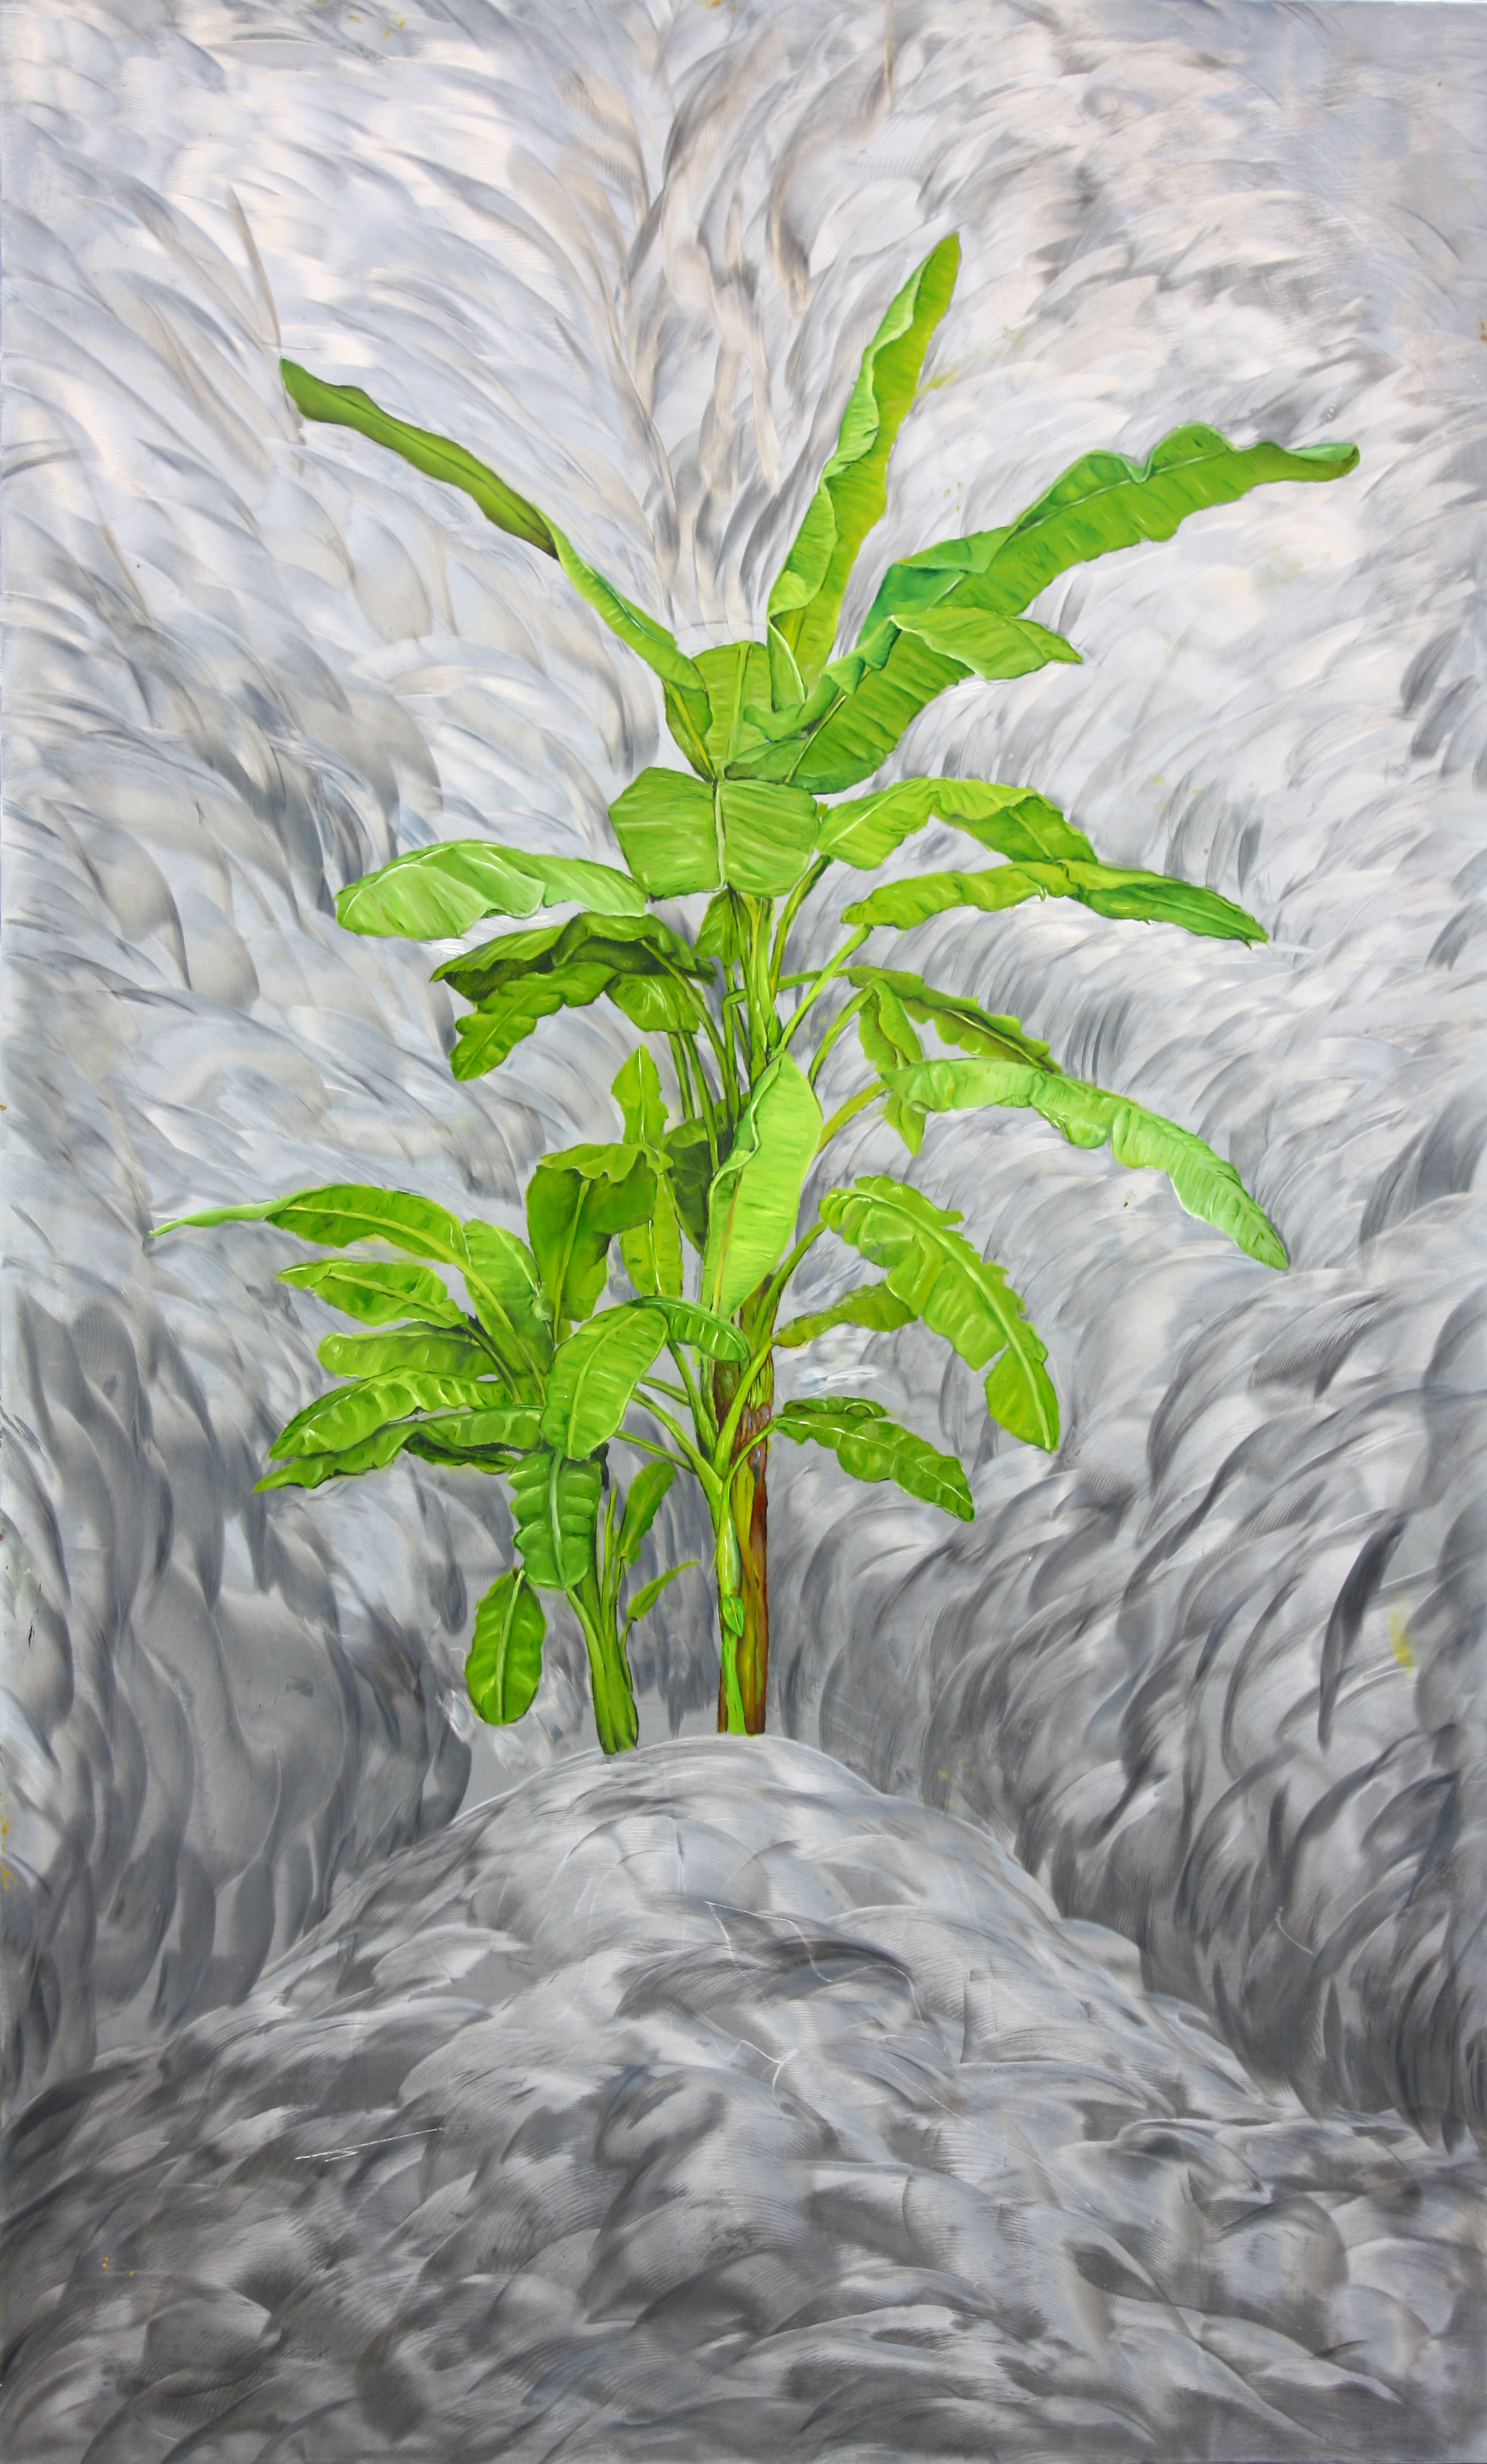 """""""Banana Tree"""" by James Russell May, Oil on aluminum, 40x25in, 2017, $3000."""